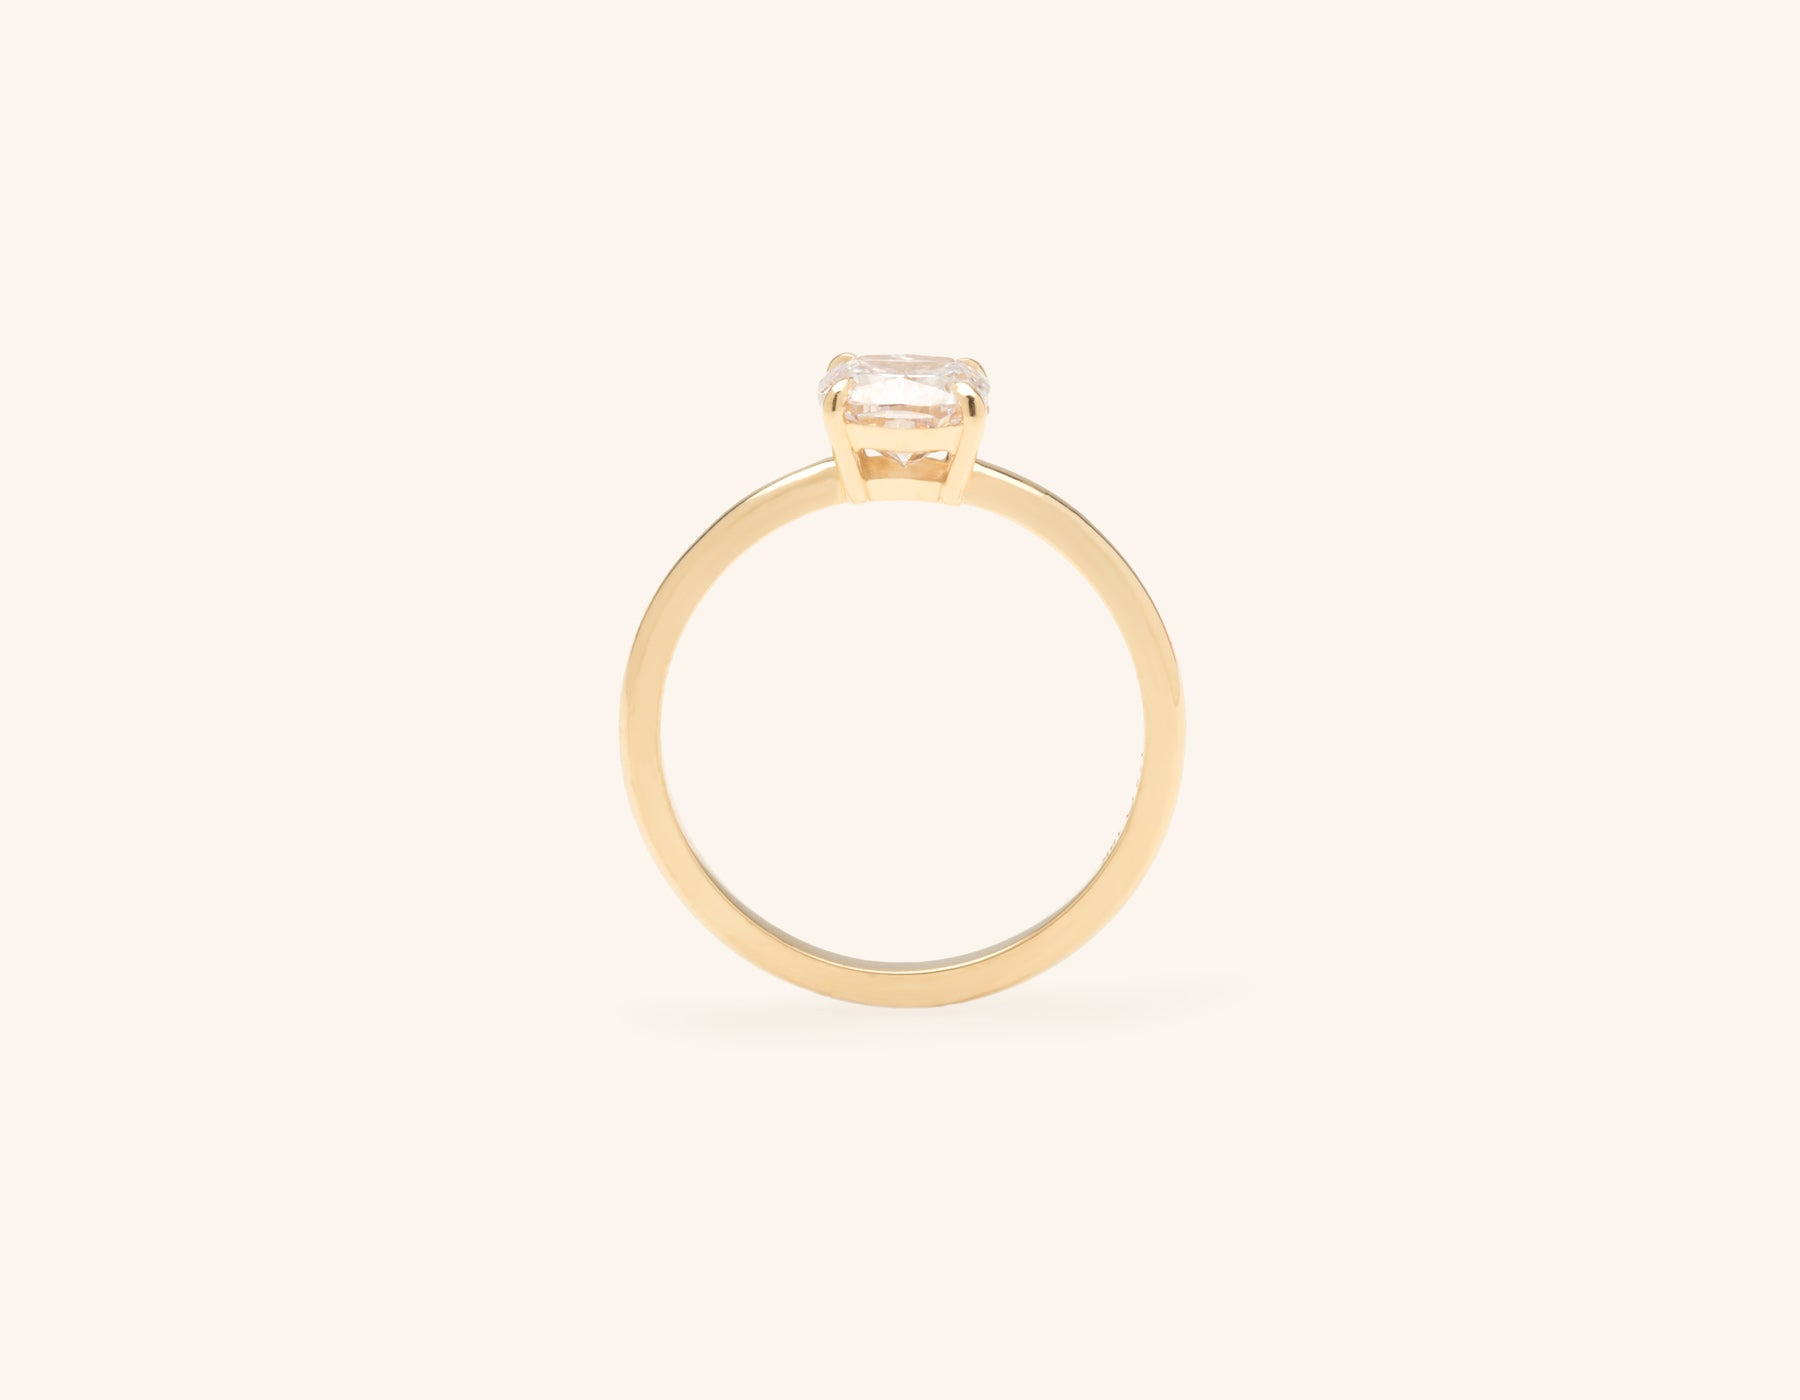 Vrai and Oro modern classic The Cushion diamond engagement ring 18k solid yellow gold sustainable jewelry